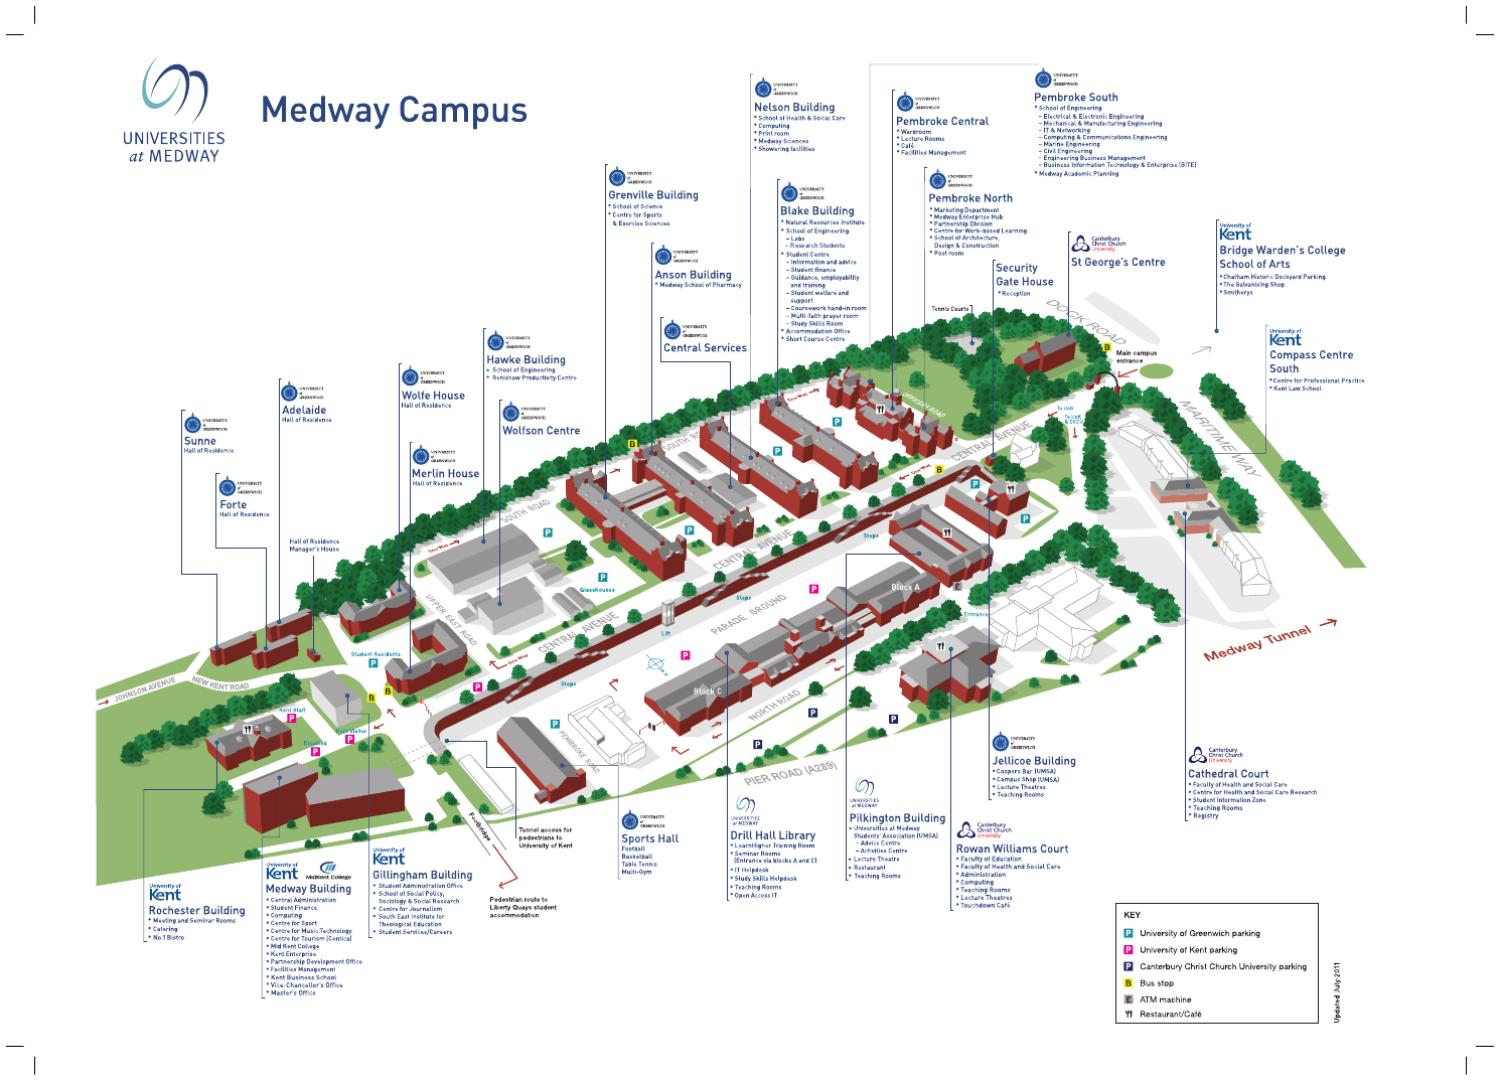 Universities at Medway campus map by University of Kent - issuu on